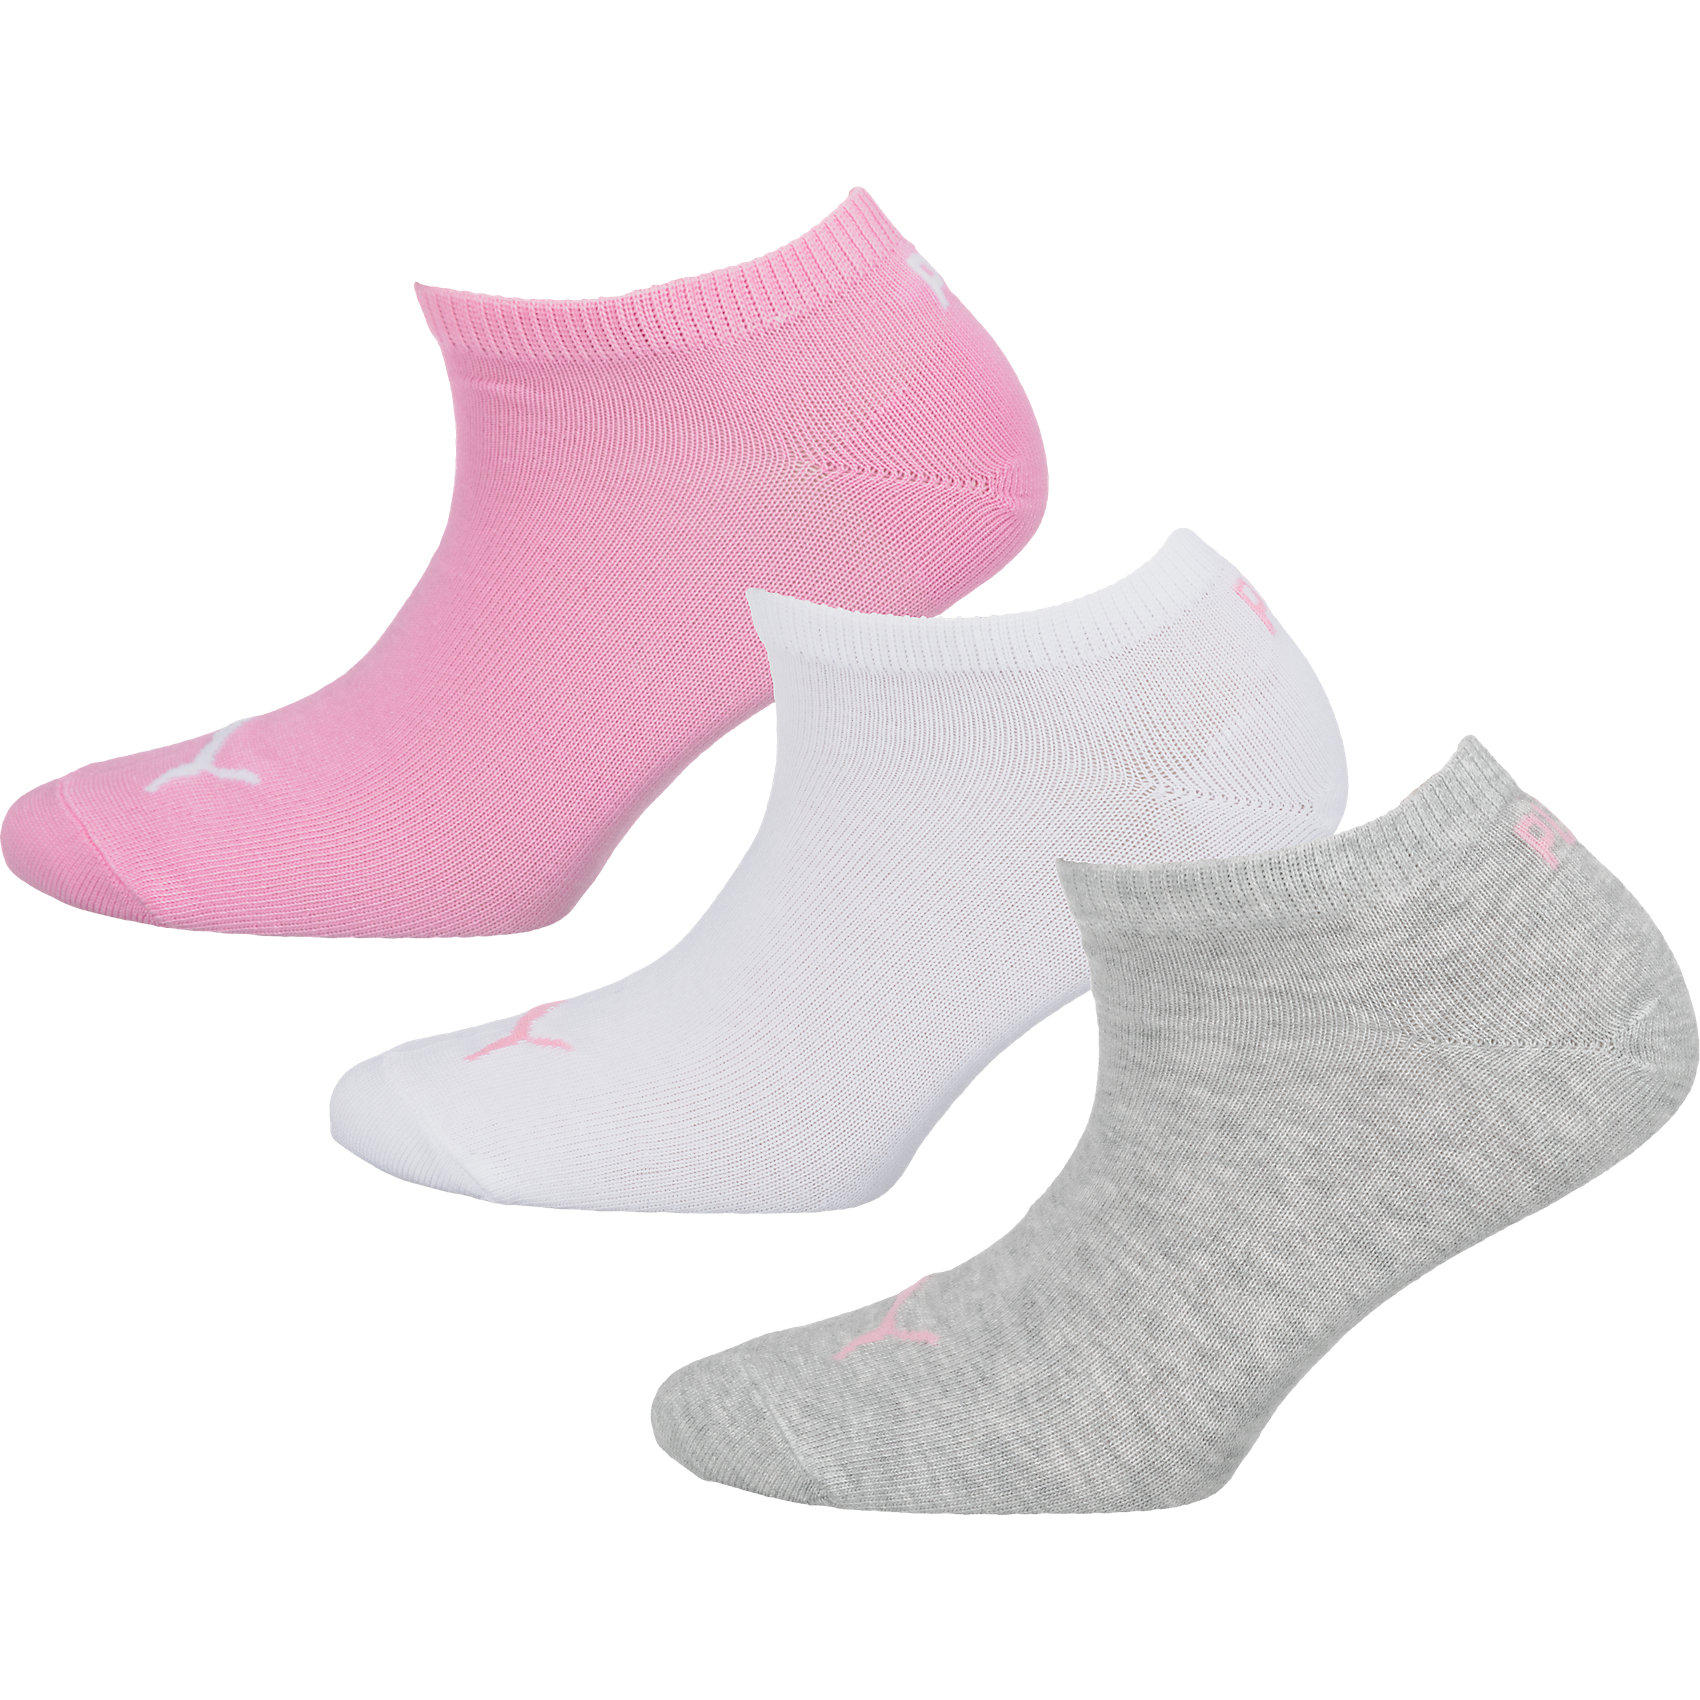 neu puma 3 paar sneaker socken wei rosa blau 5703329 ebay. Black Bedroom Furniture Sets. Home Design Ideas